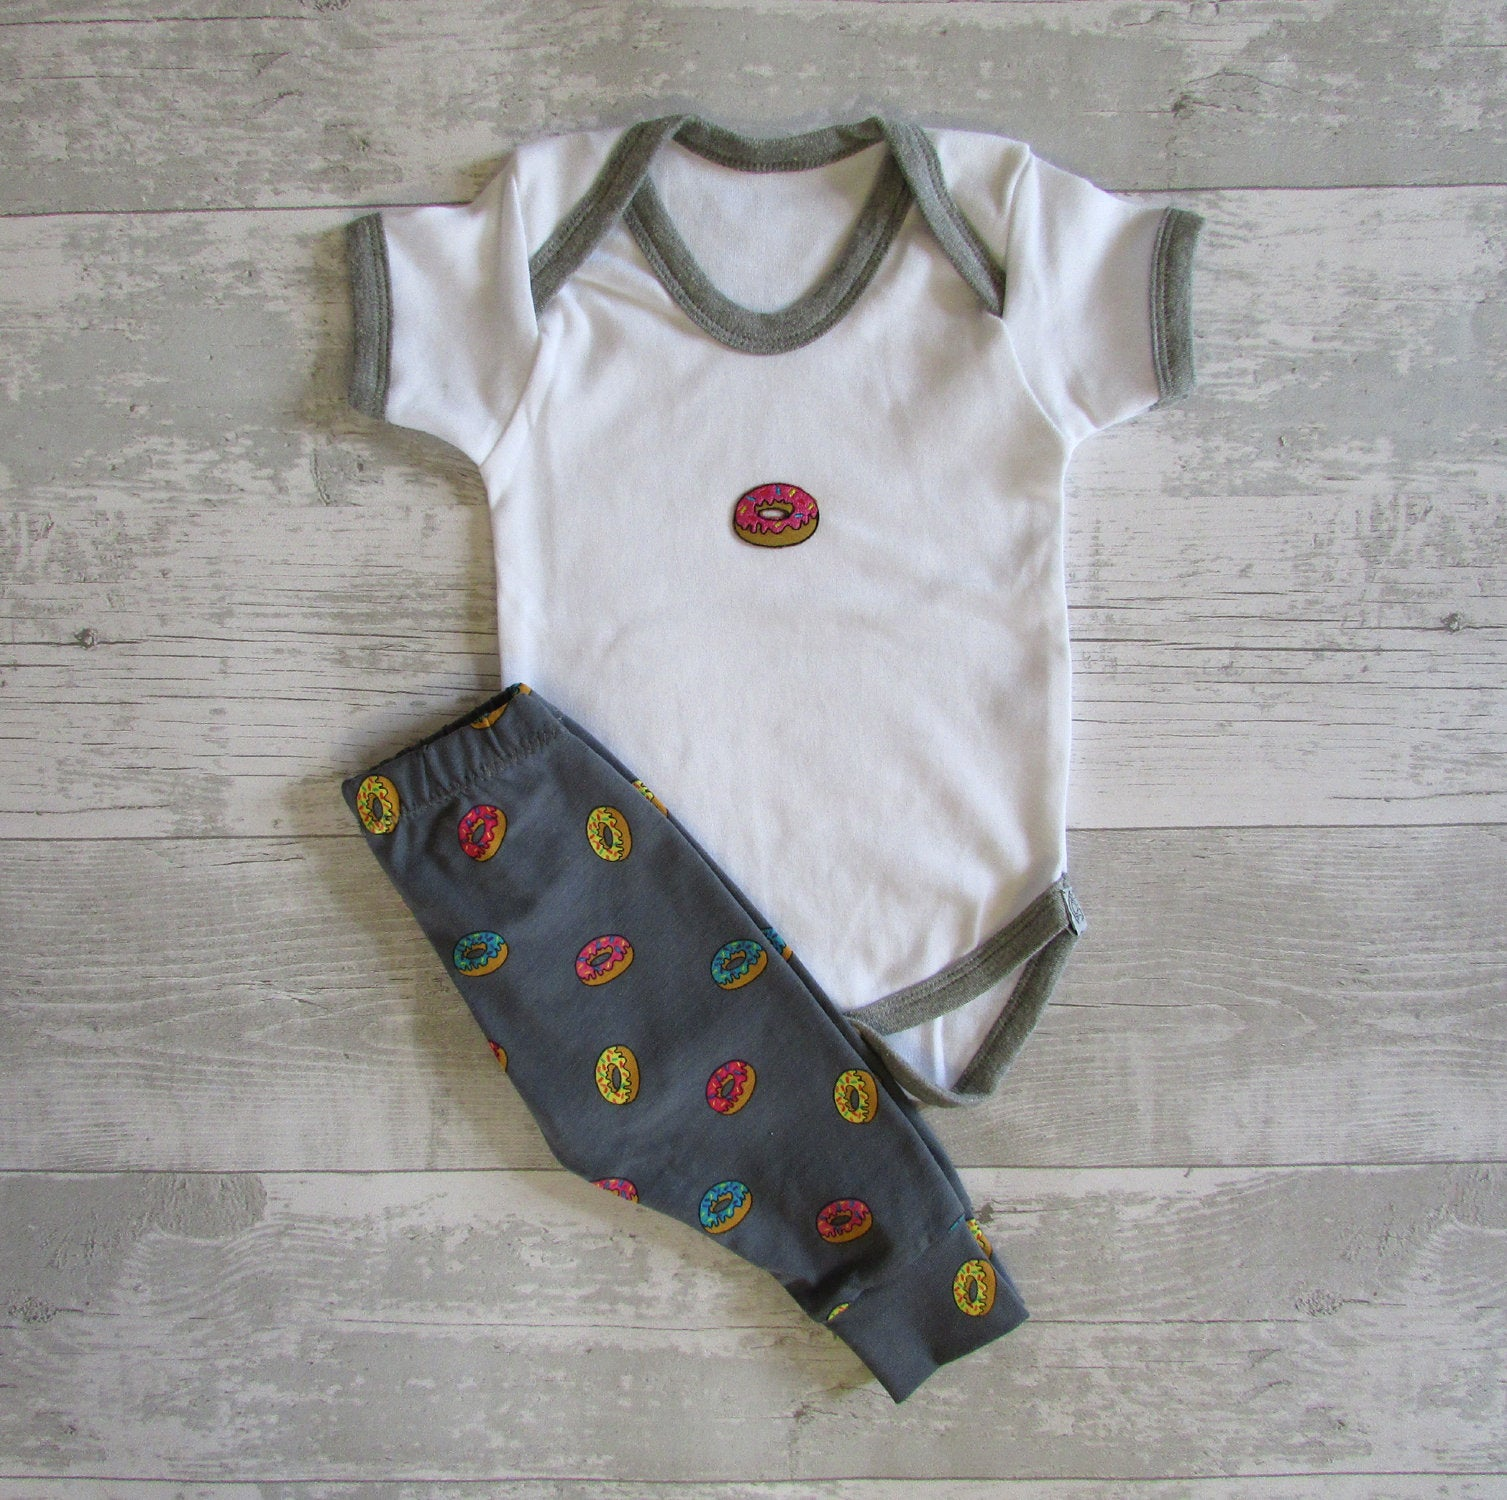 Embroidered Doughnut Baby Grow